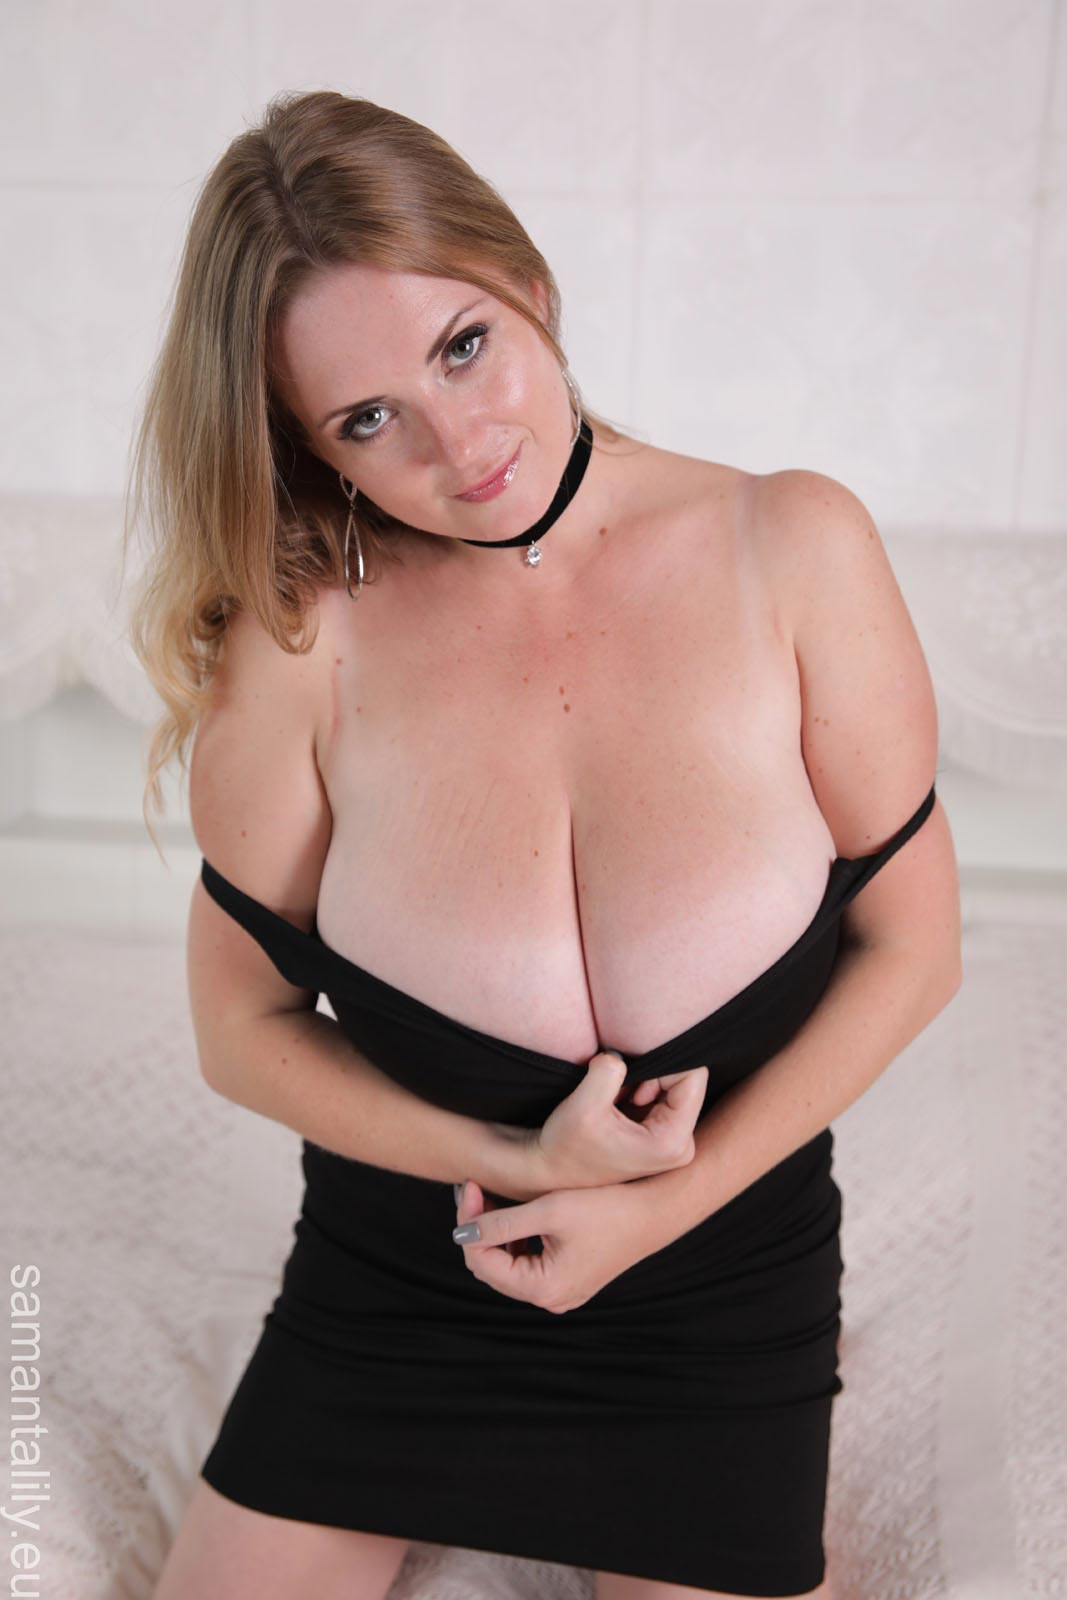 Sexy chubby women pictures